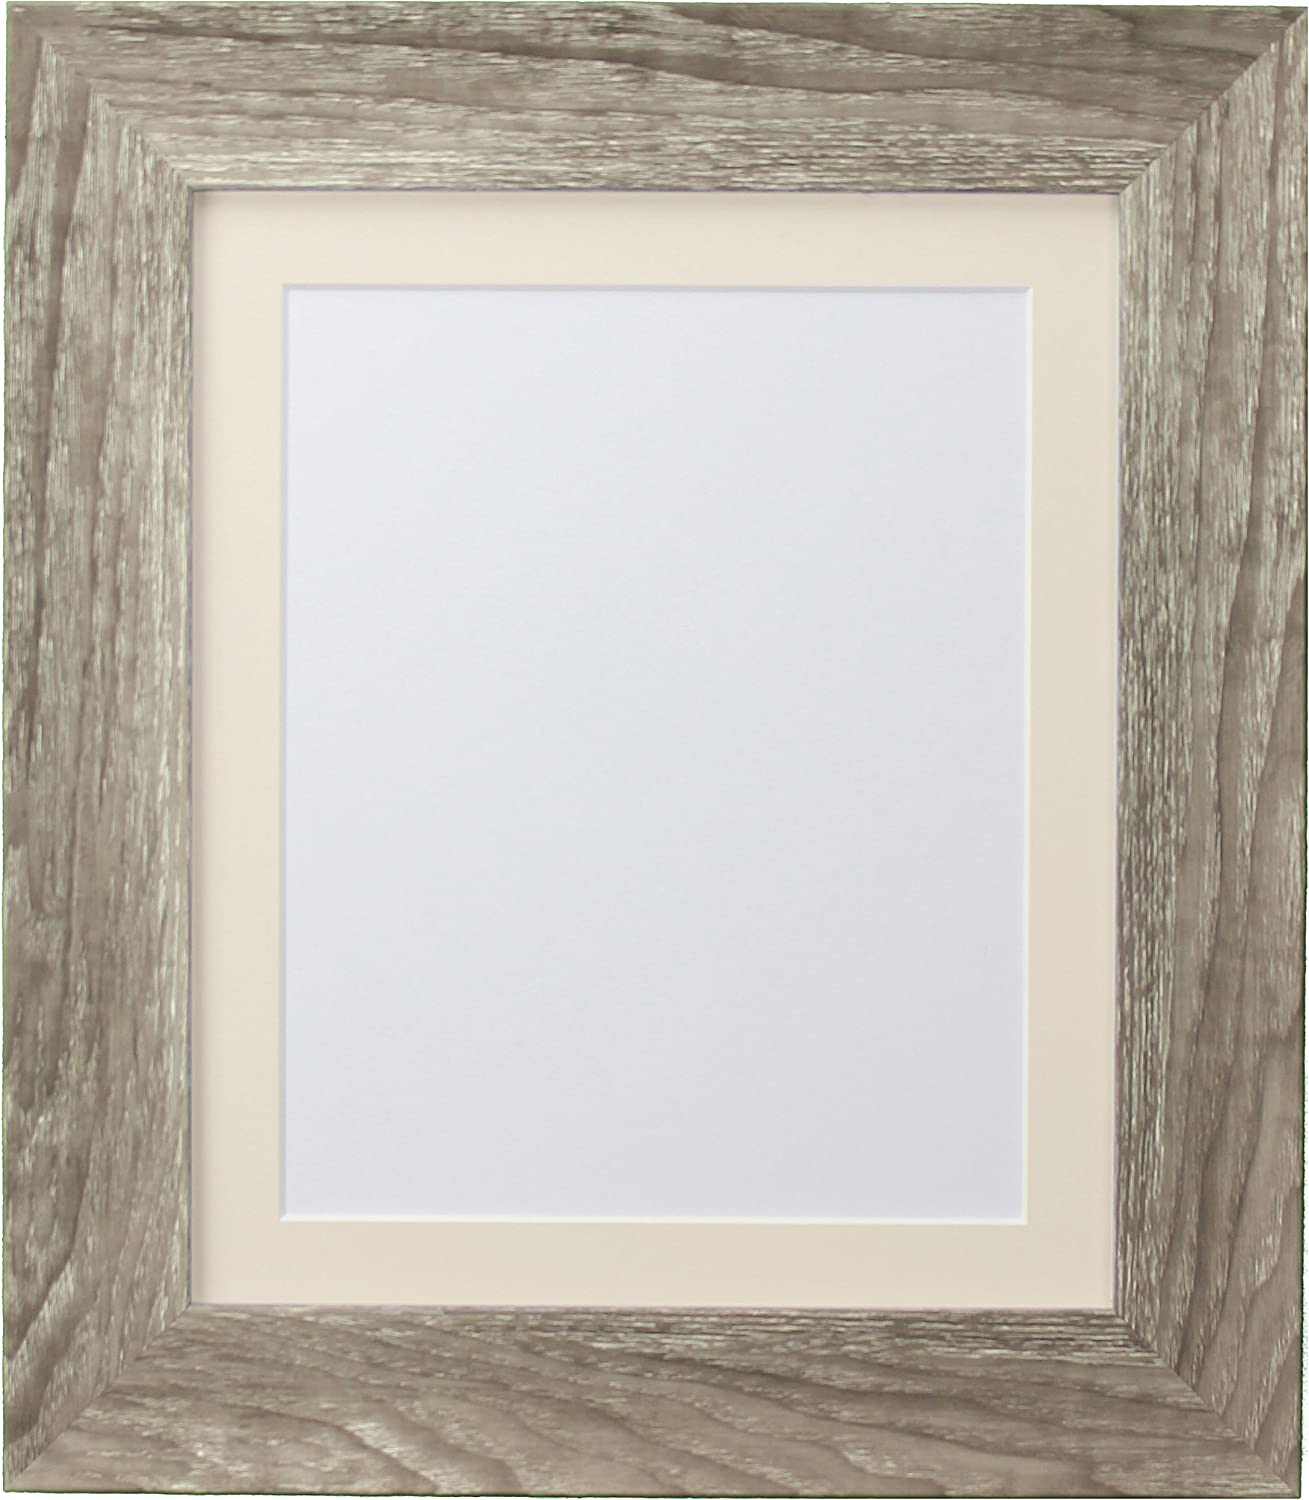 FRAMES Baltimore Mall Reservation BY POST Hygge Picture Photo Gl Poster Plastic and Frame